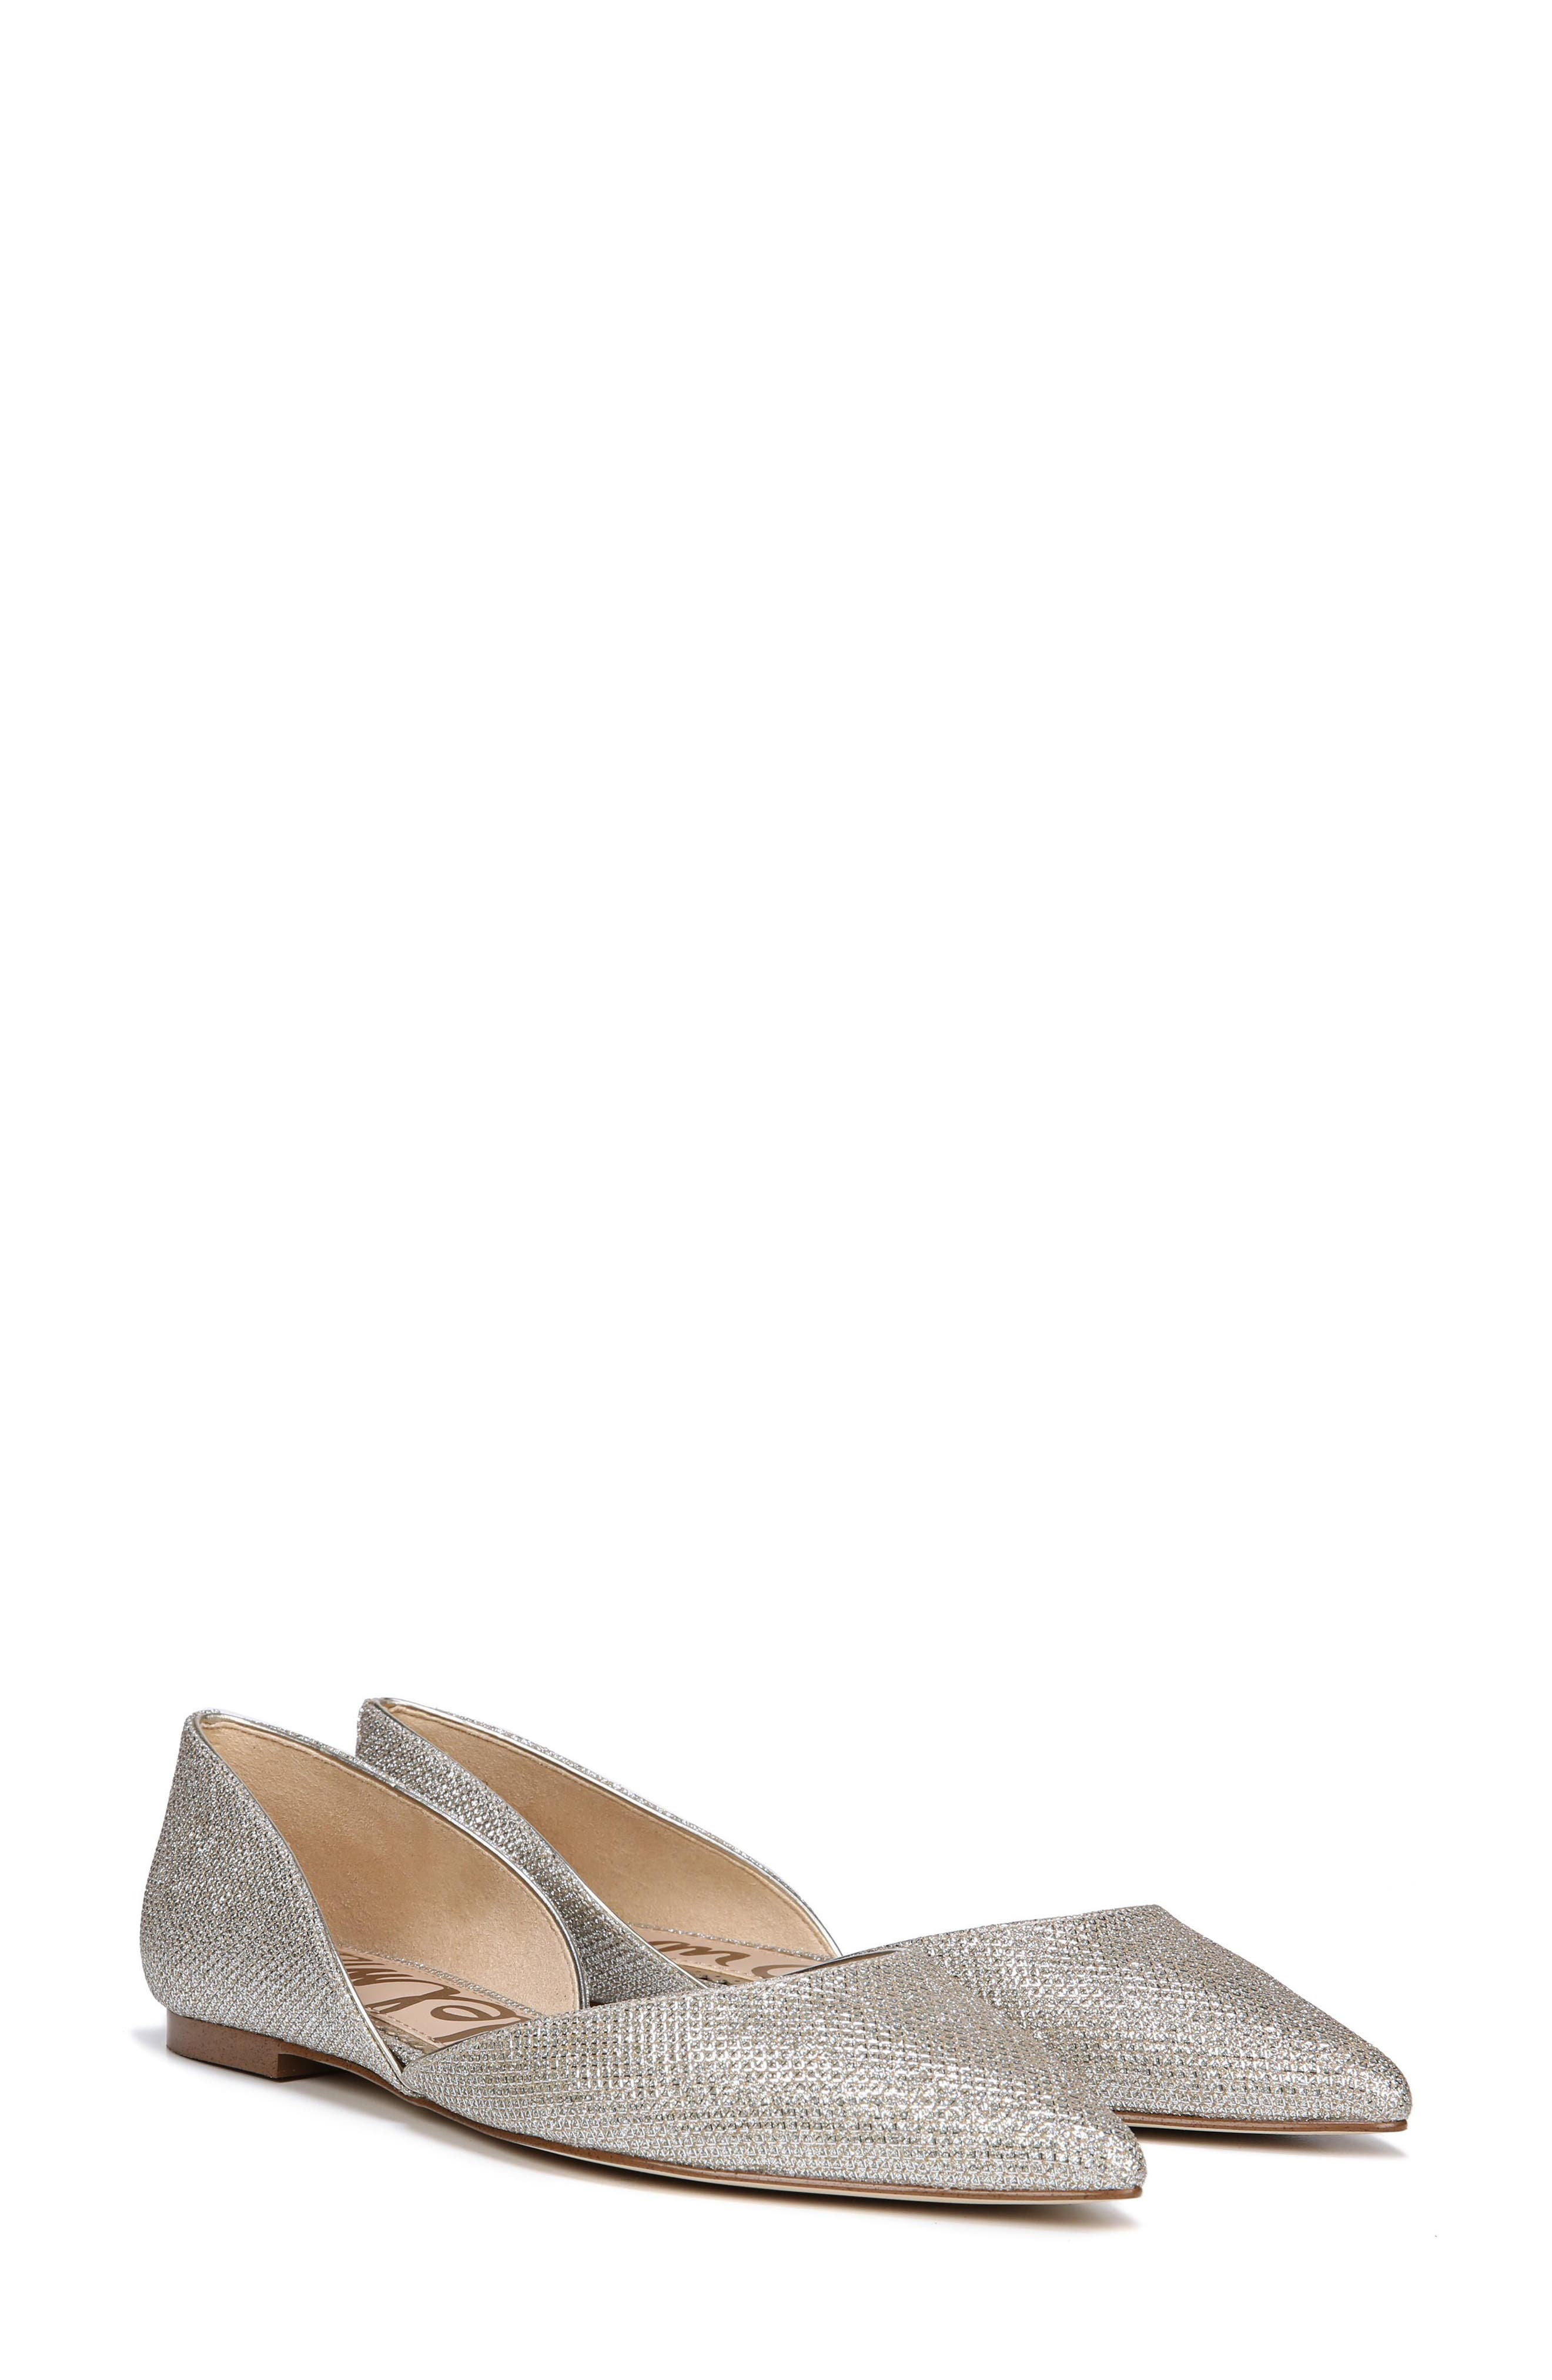 Rodney Pointy Toe d'Orsay Flat,                             Alternate thumbnail 8, color,                             JUTE GLAM FABRIC